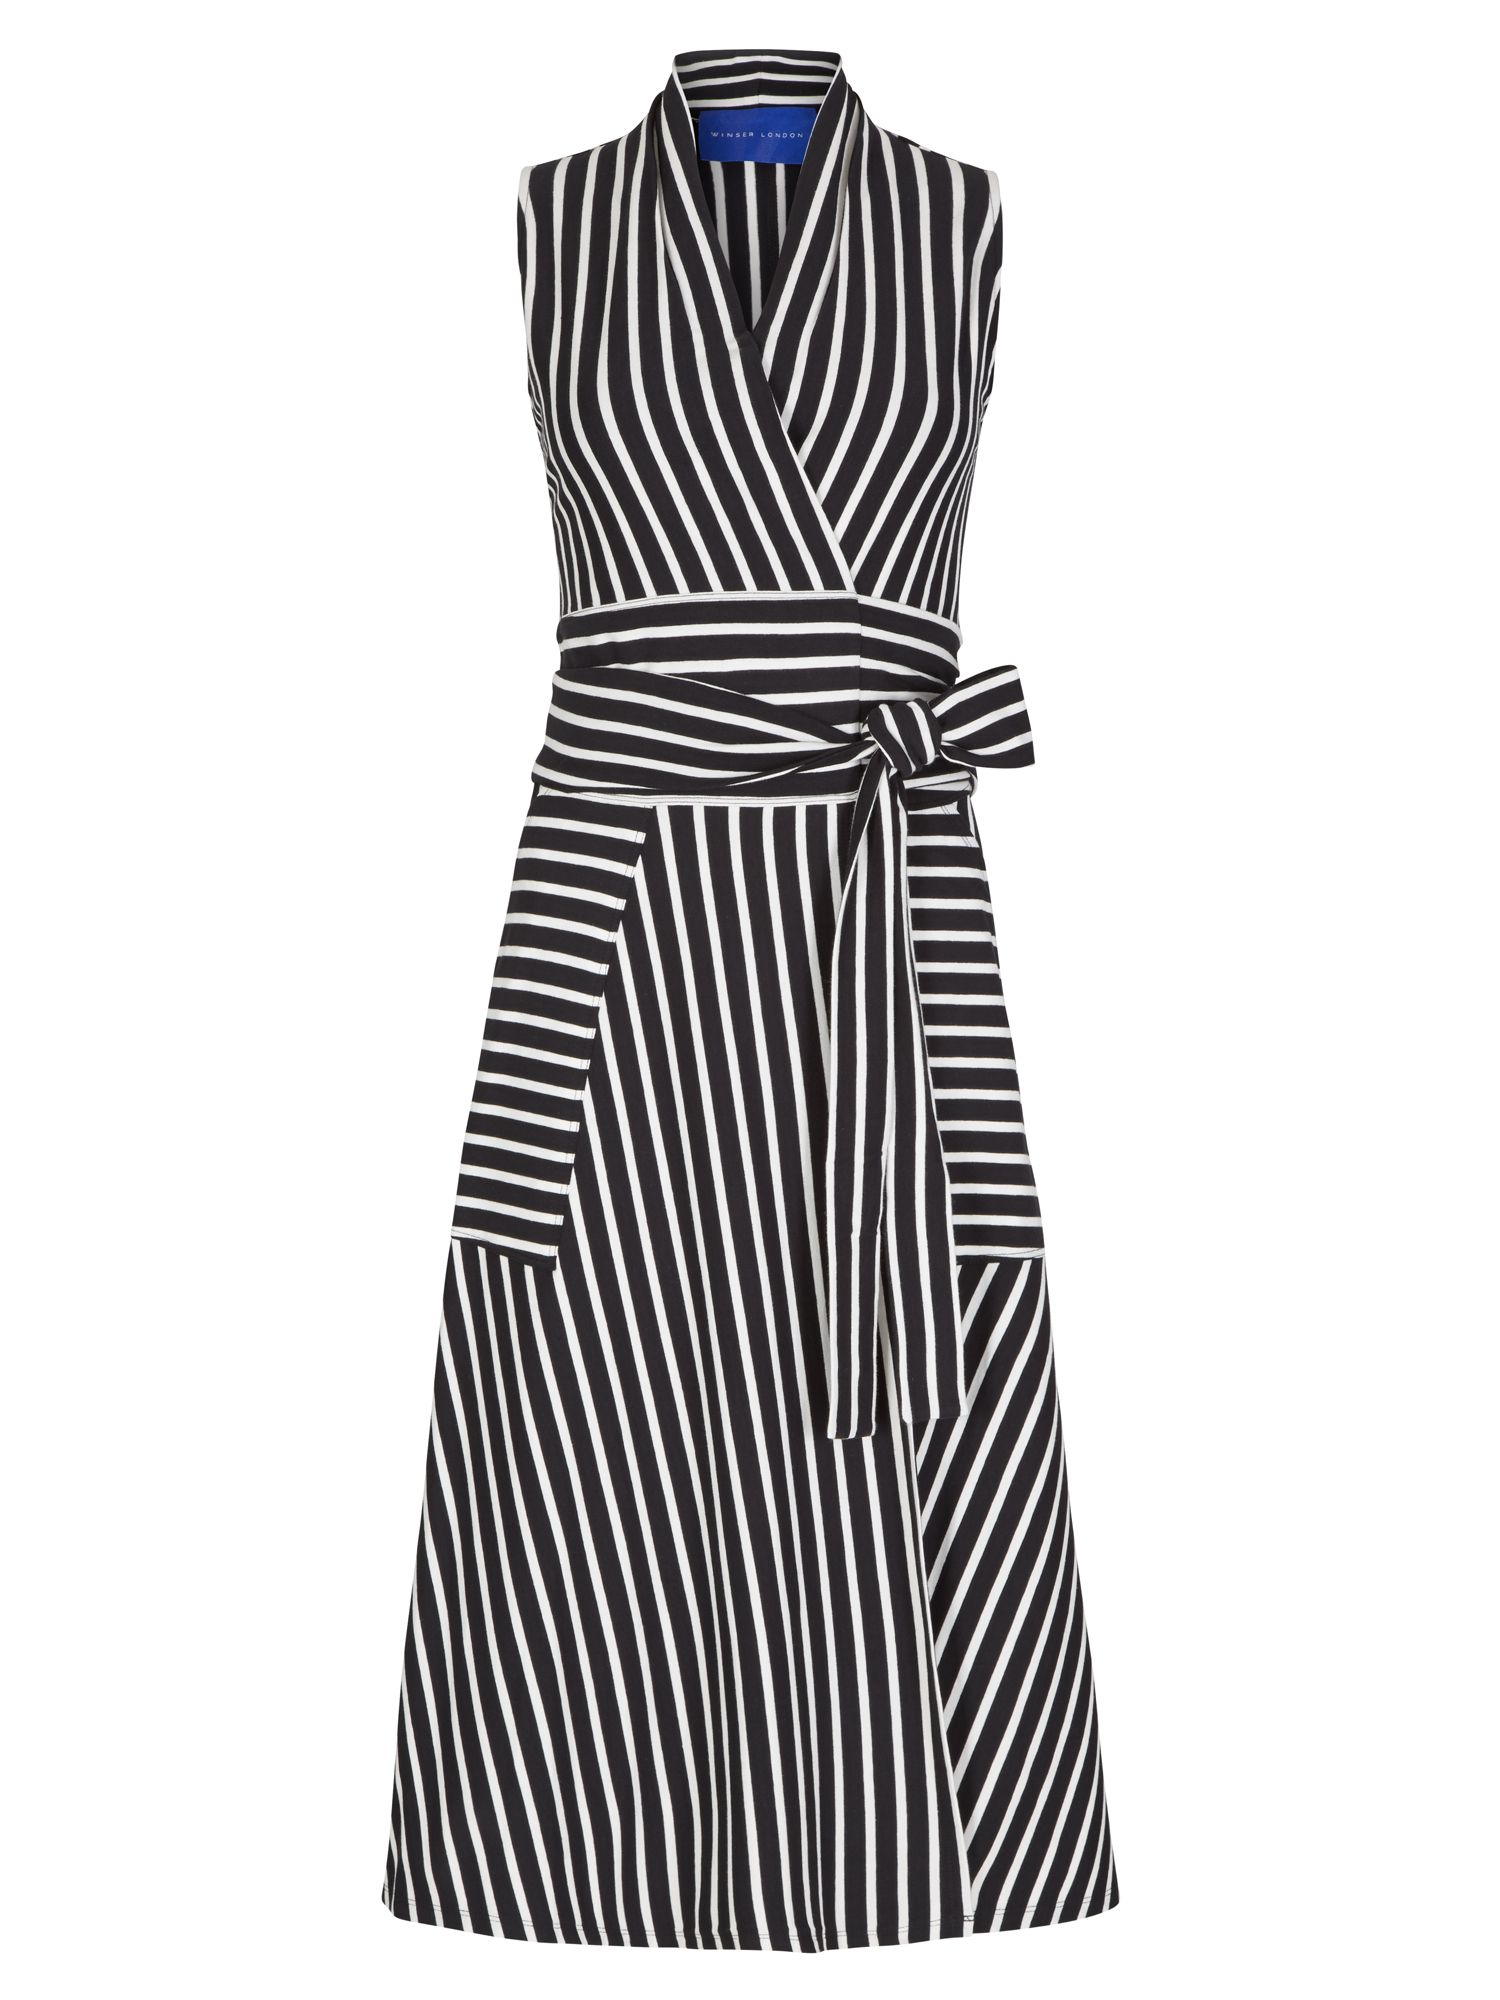 Winser London Cotton Jersey Striped Wrap Dress, Multi-Coloured